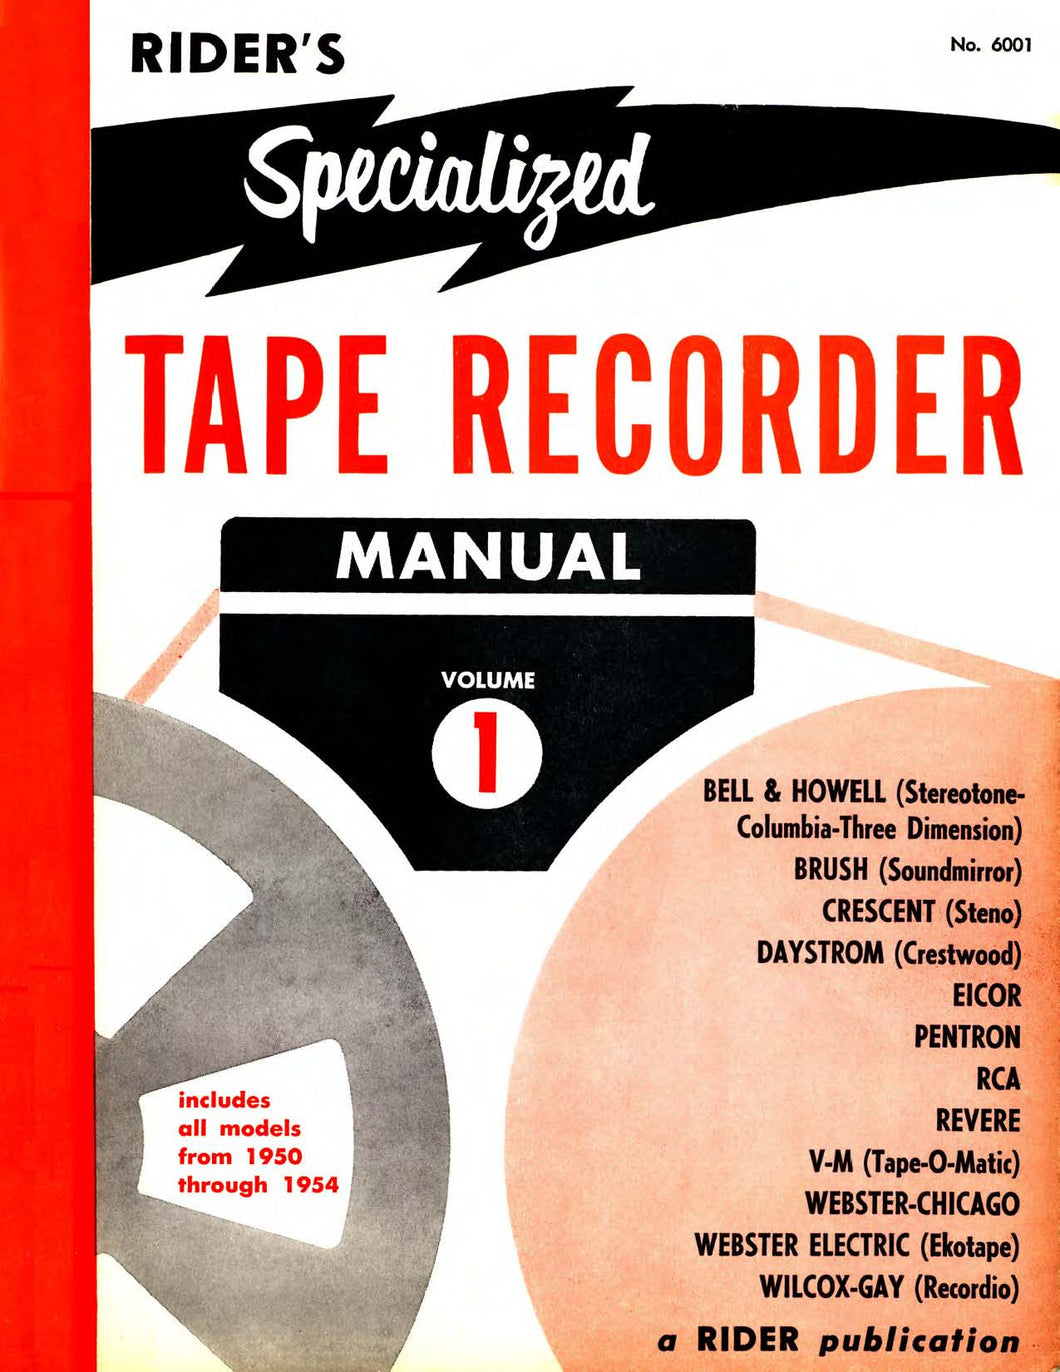 Rider's Specialized Tape Recorder Manual Volume 1